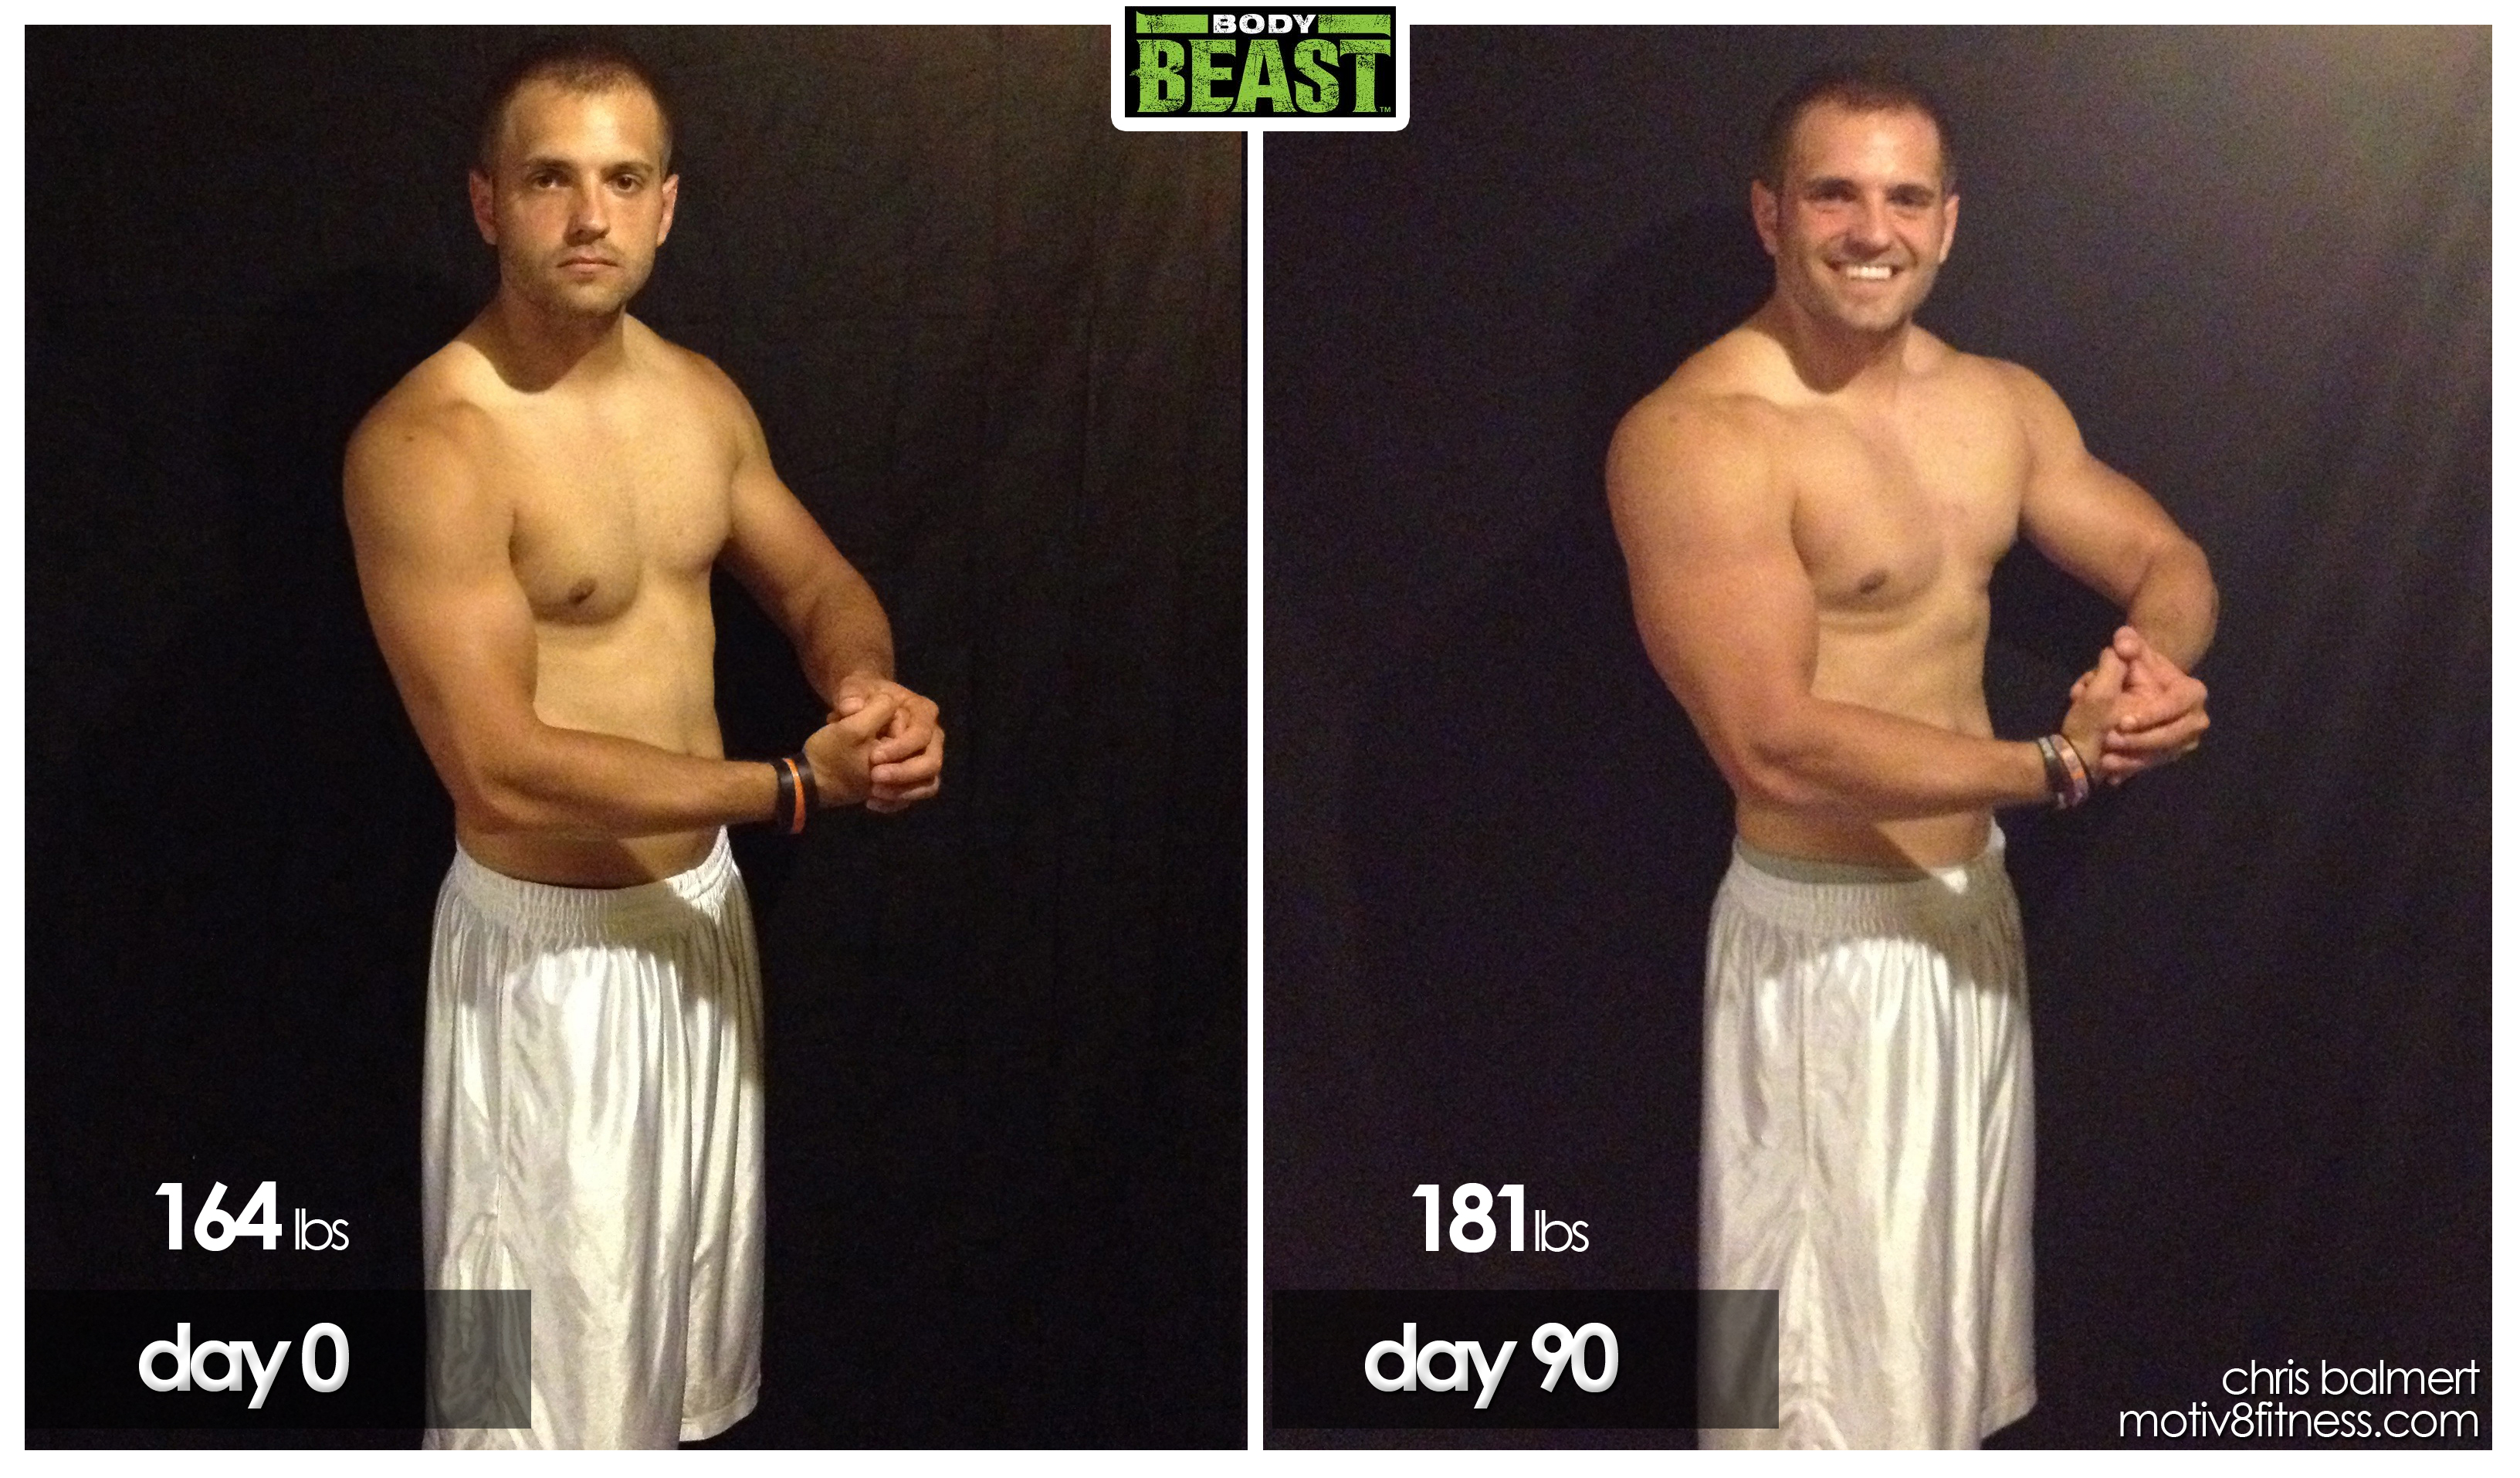 My Body Beast 90 Day Results